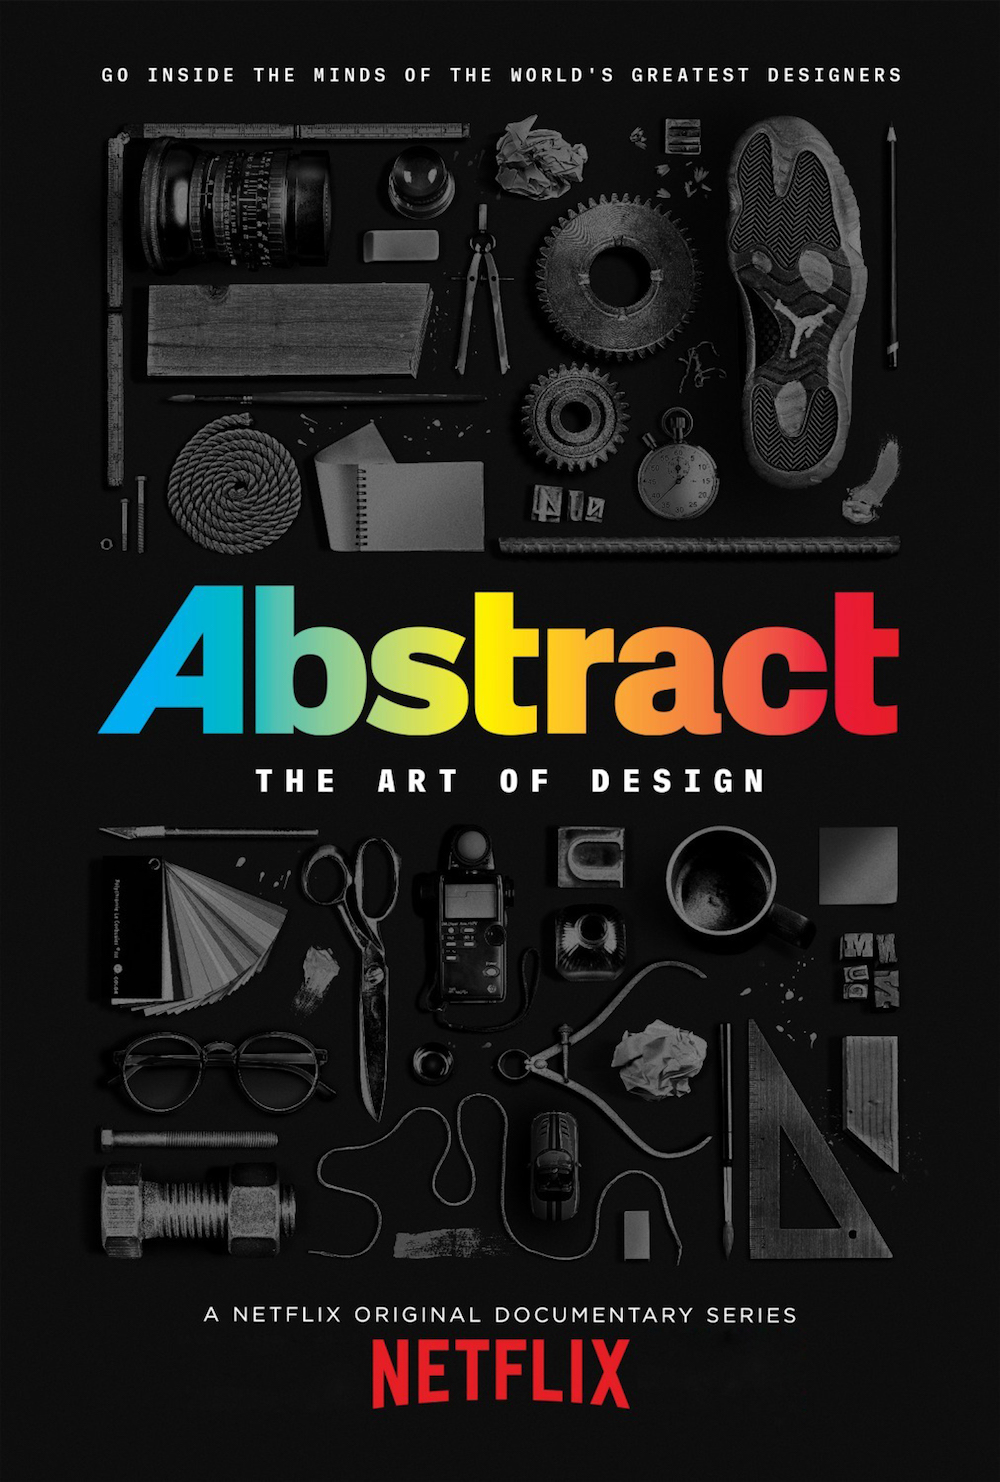 Netflix Documentaries for Graphic Designers - Abstract: The Art of Design